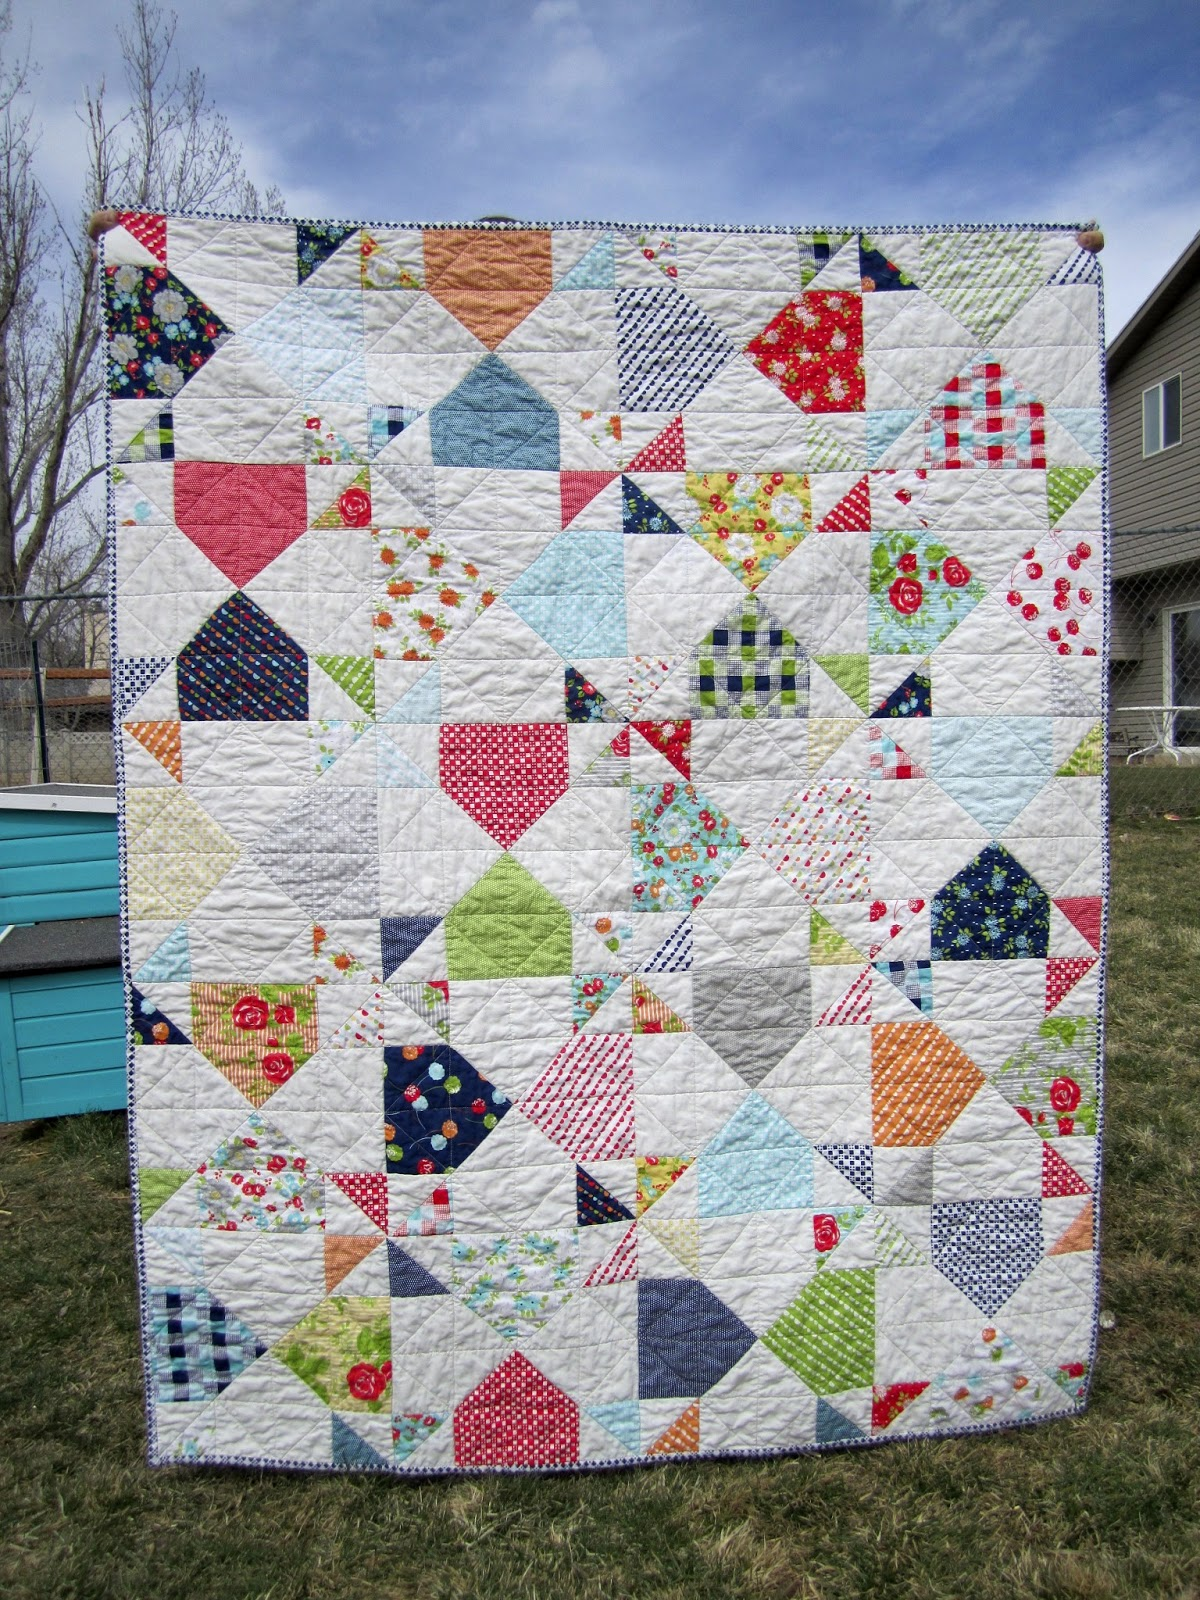 traceyjay quilts: Roundhouse - Finished and Published!